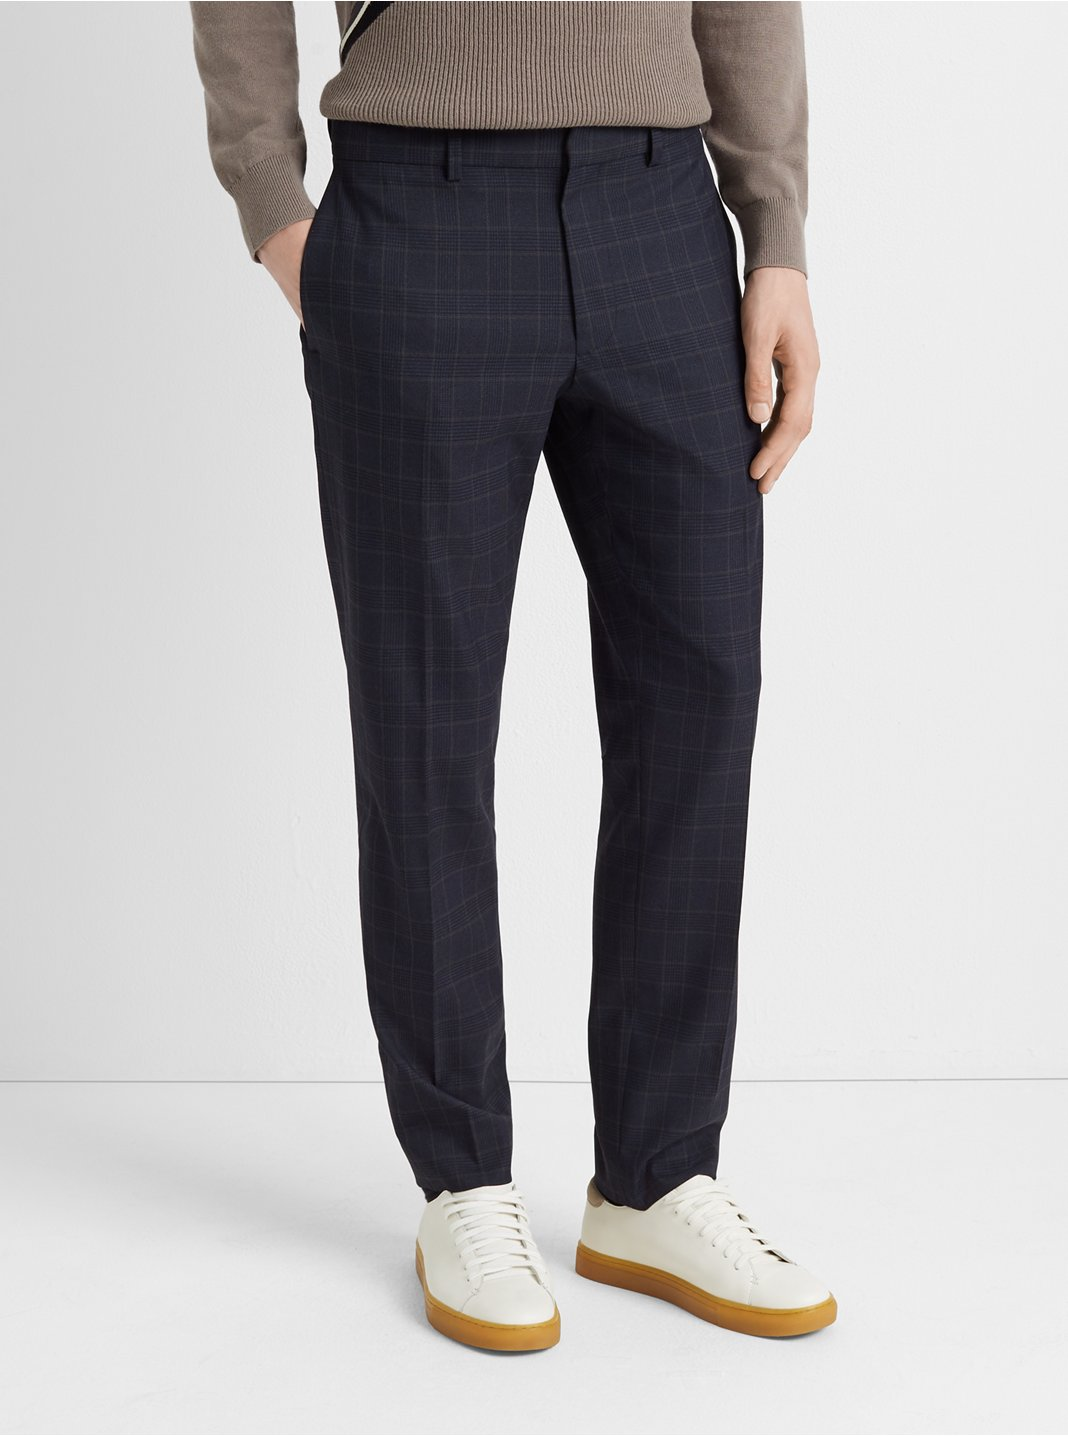 Sutton Plaid Dress Pant